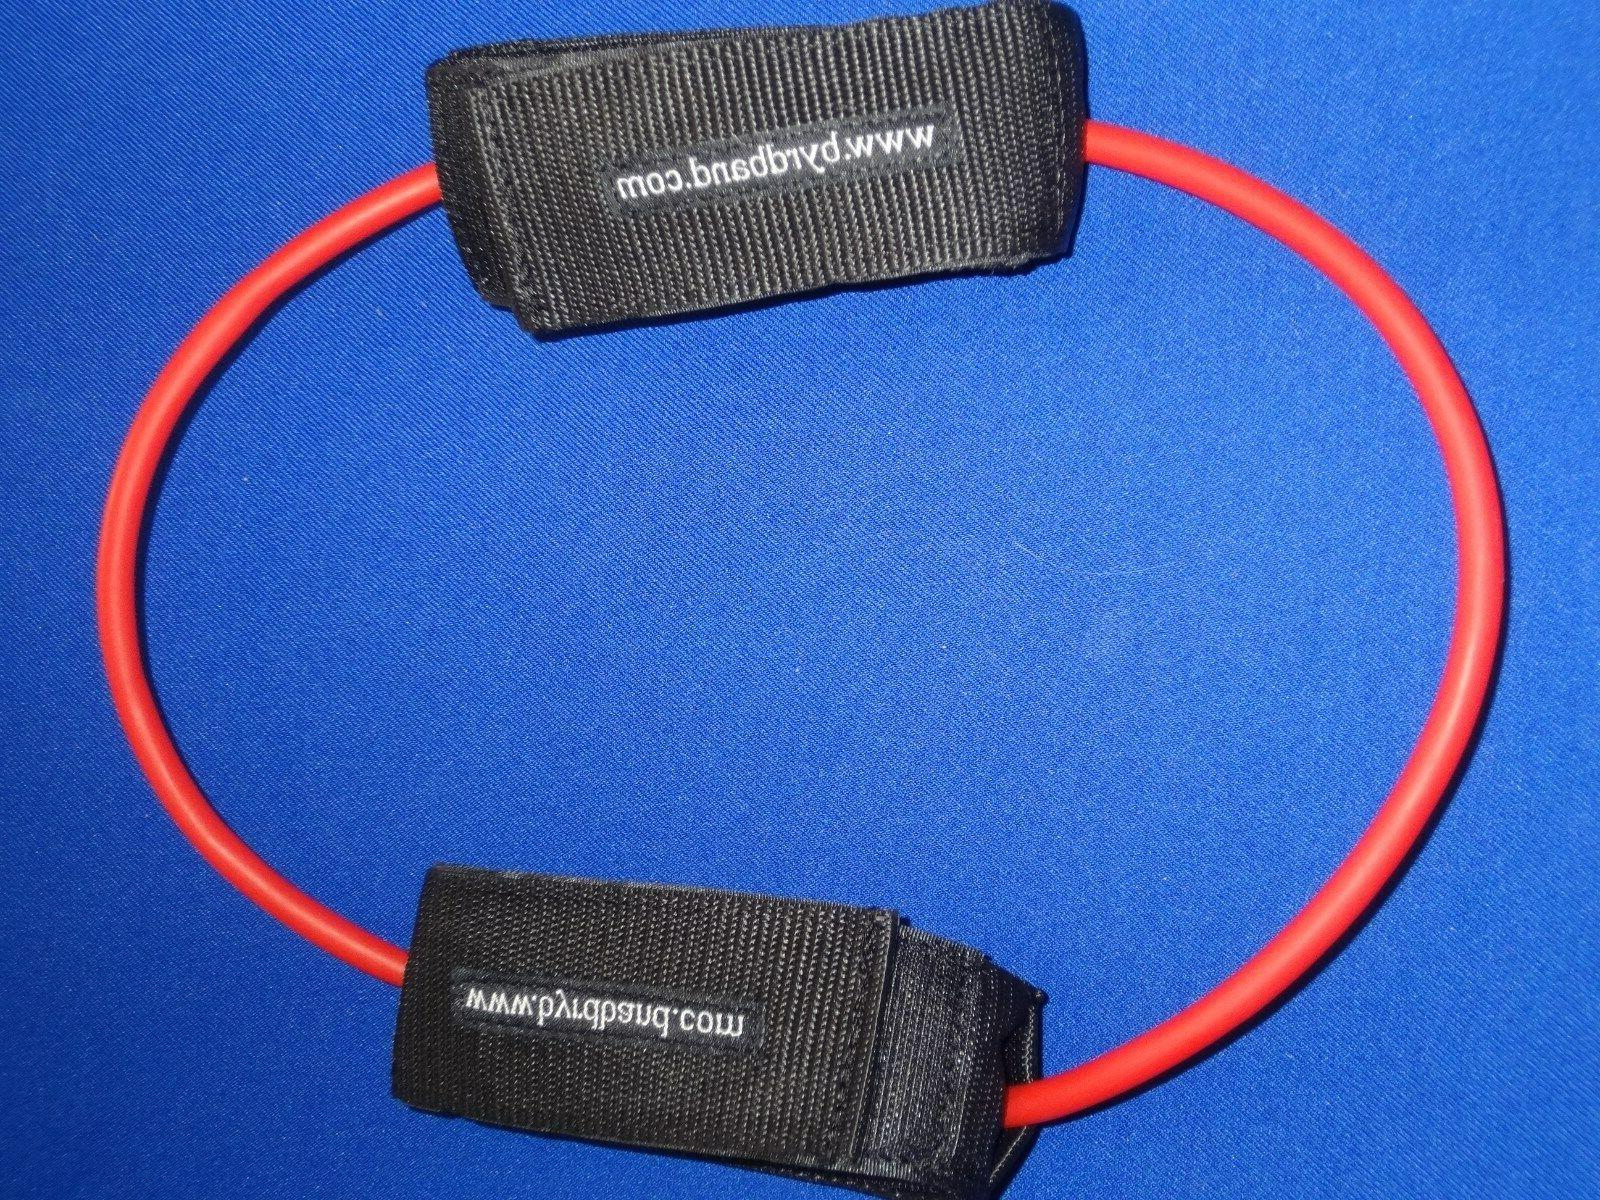 Byrdband Lateral Band w/ Padded Ankle